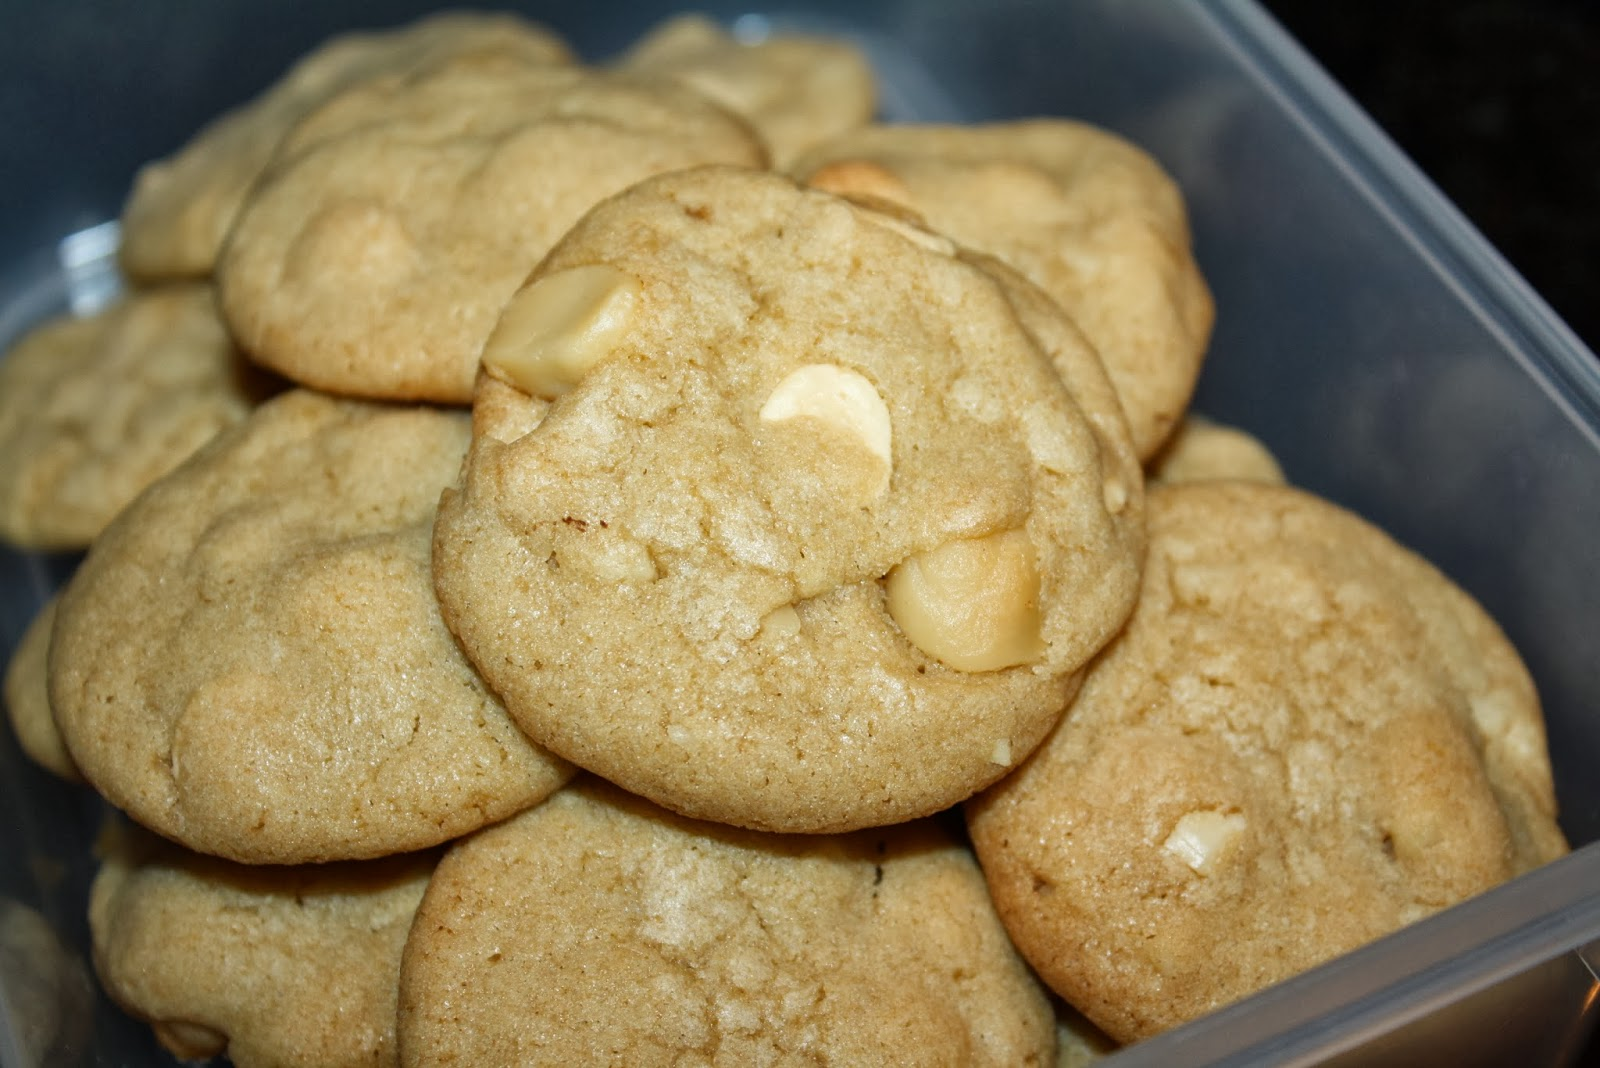 From the Ghirardelli Macadamia White Chip Cookies recipe on theback of ...